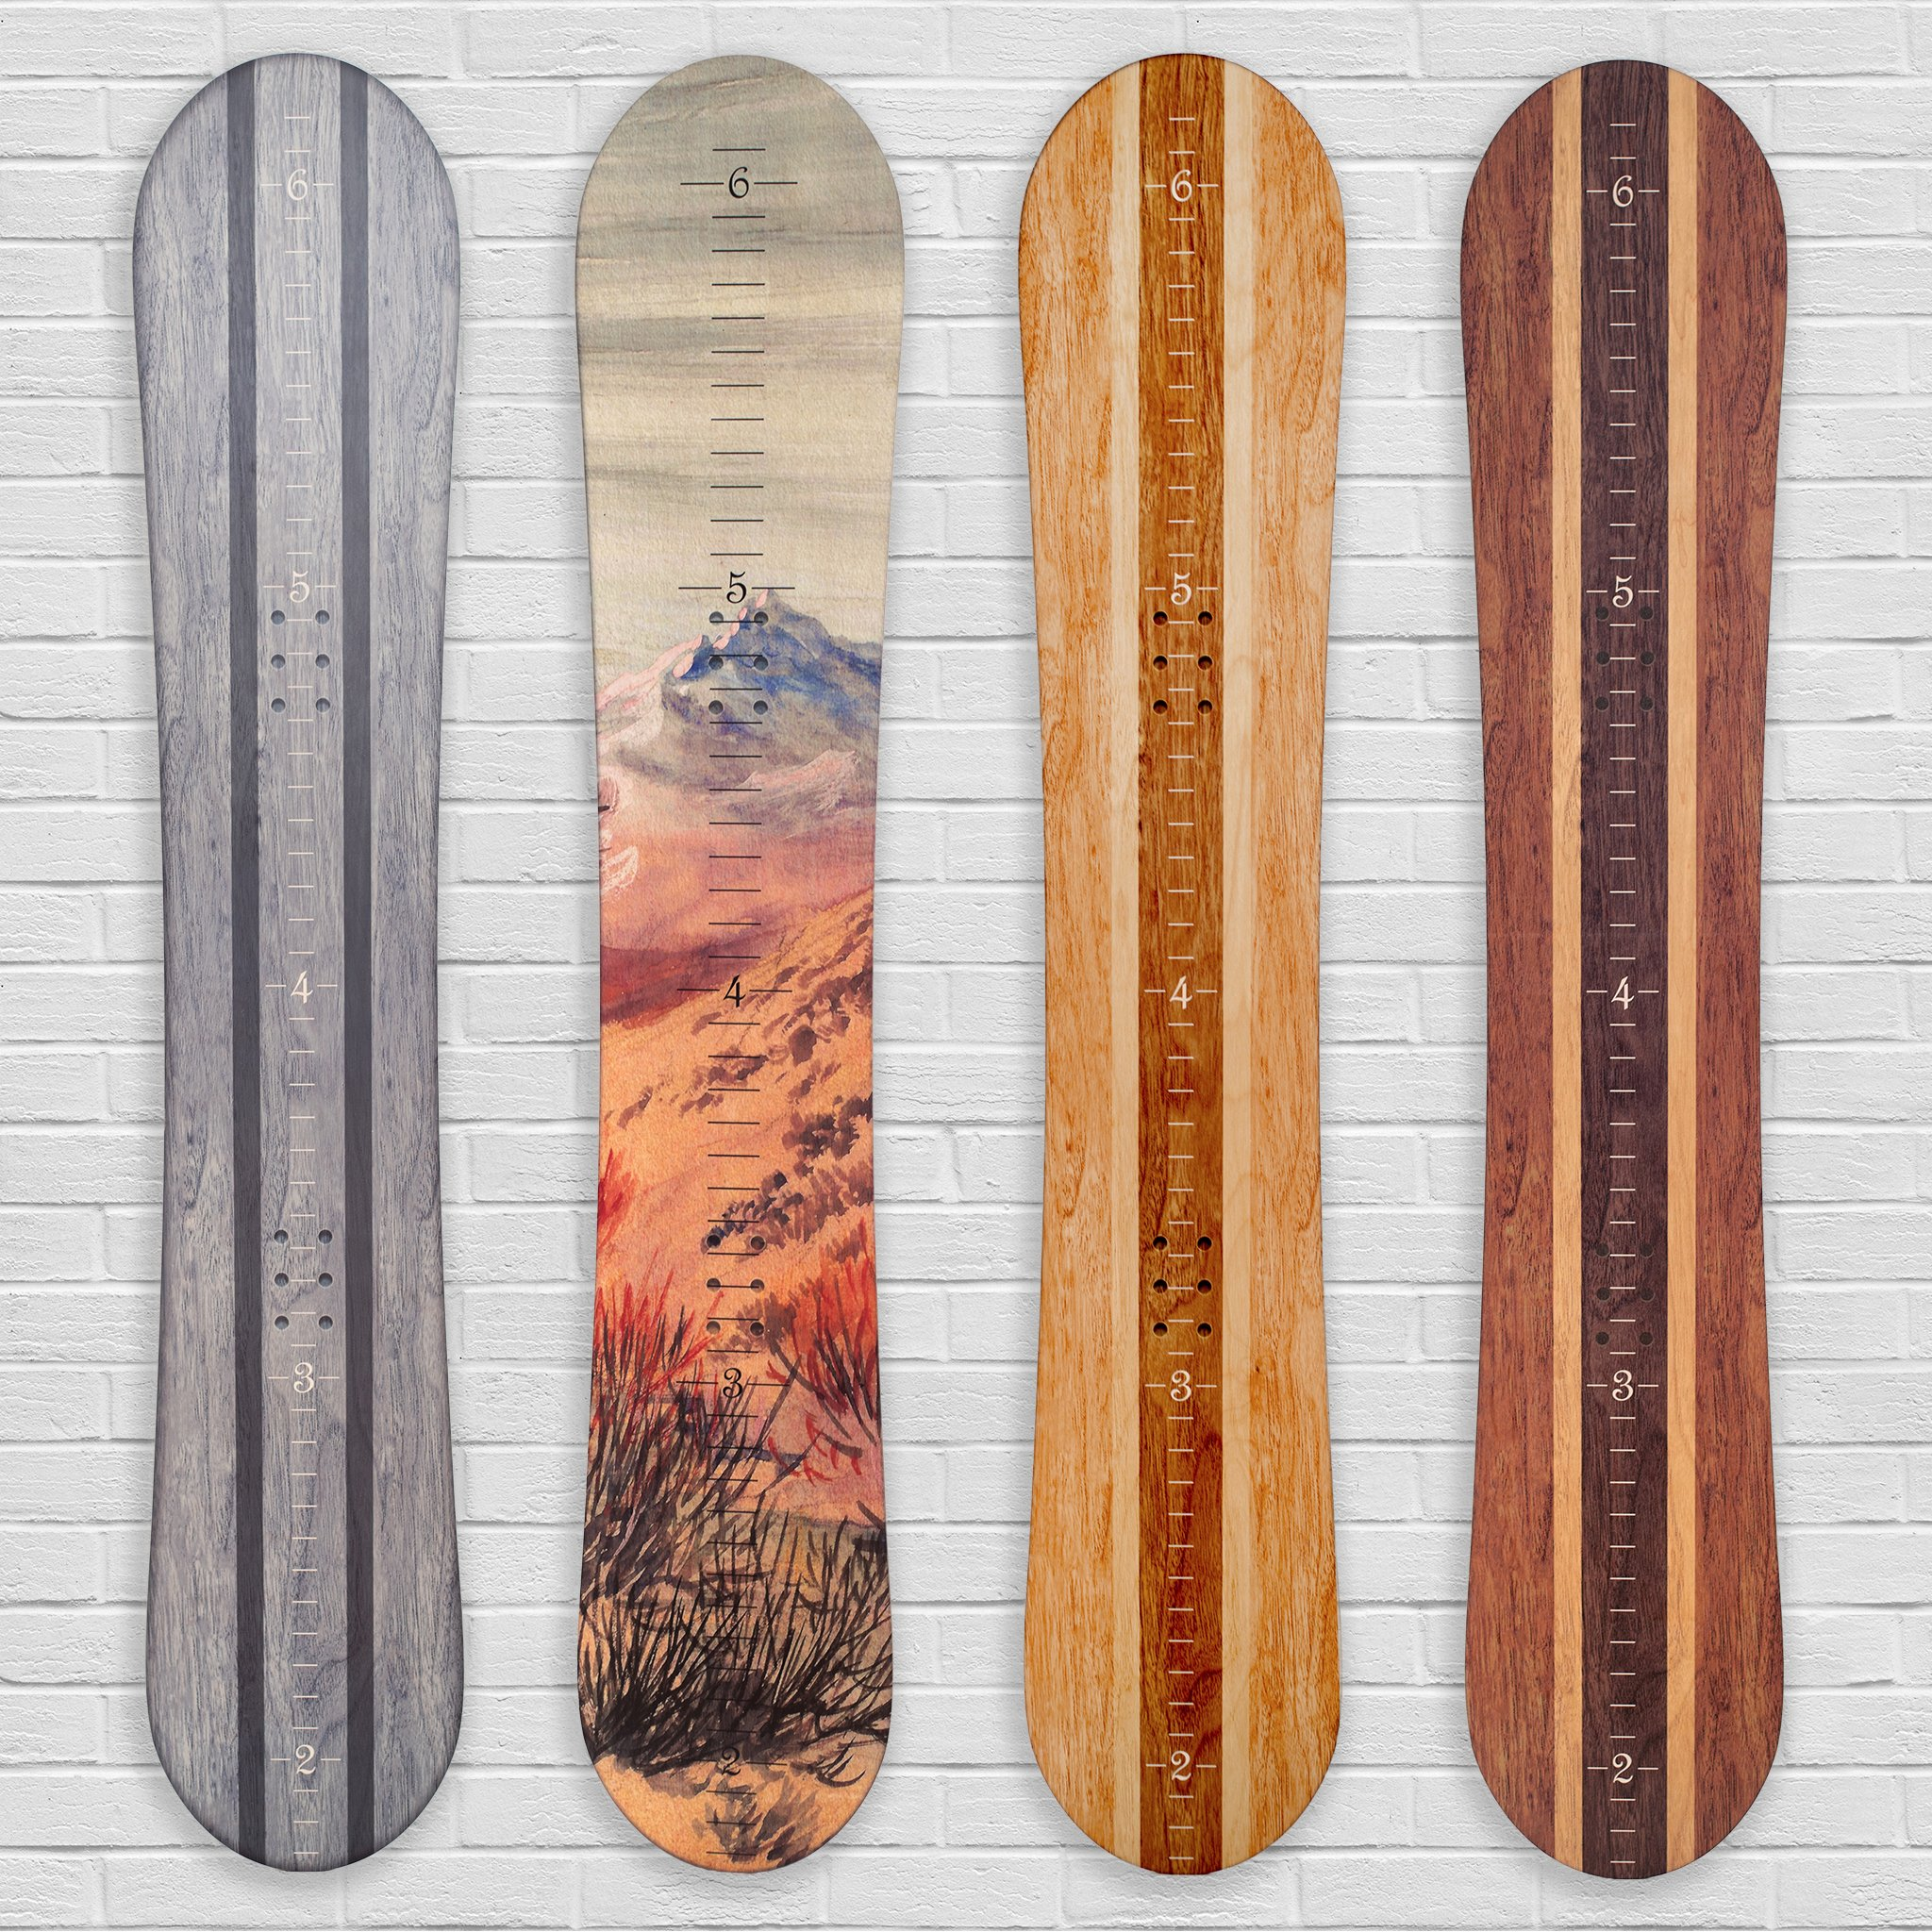 Growth Chart Art | Wooden Snowboard Height Chart for Kids, Boys, Girls for Measuring Height of Kids, Nursery Wall Decor | Baby Snowboard | Traditional Wood